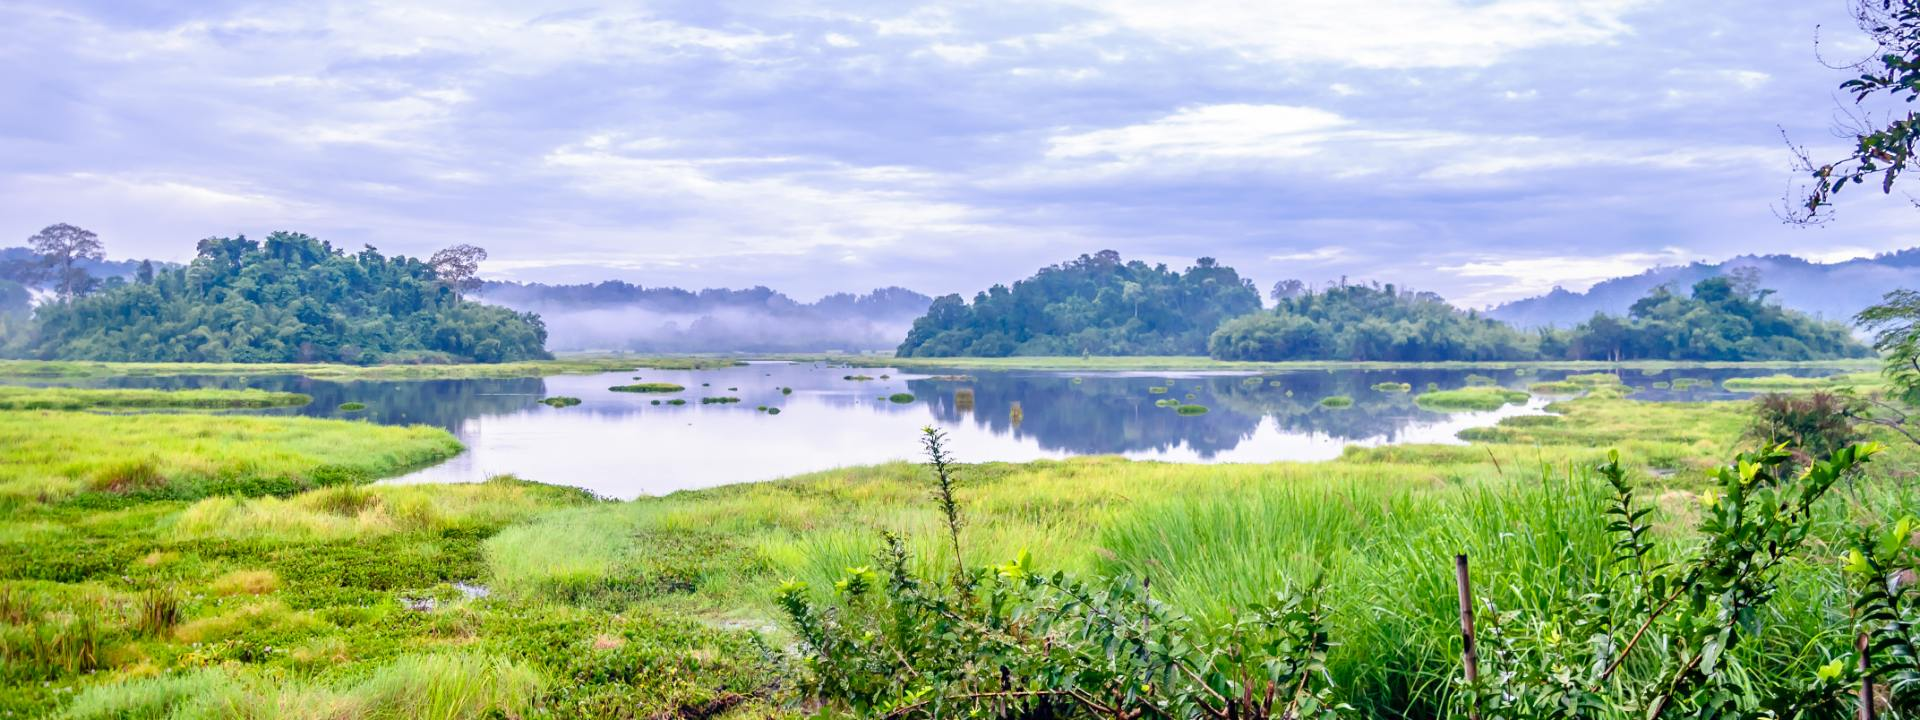 Trekking in Nam Cat Tien National Park 3 Days